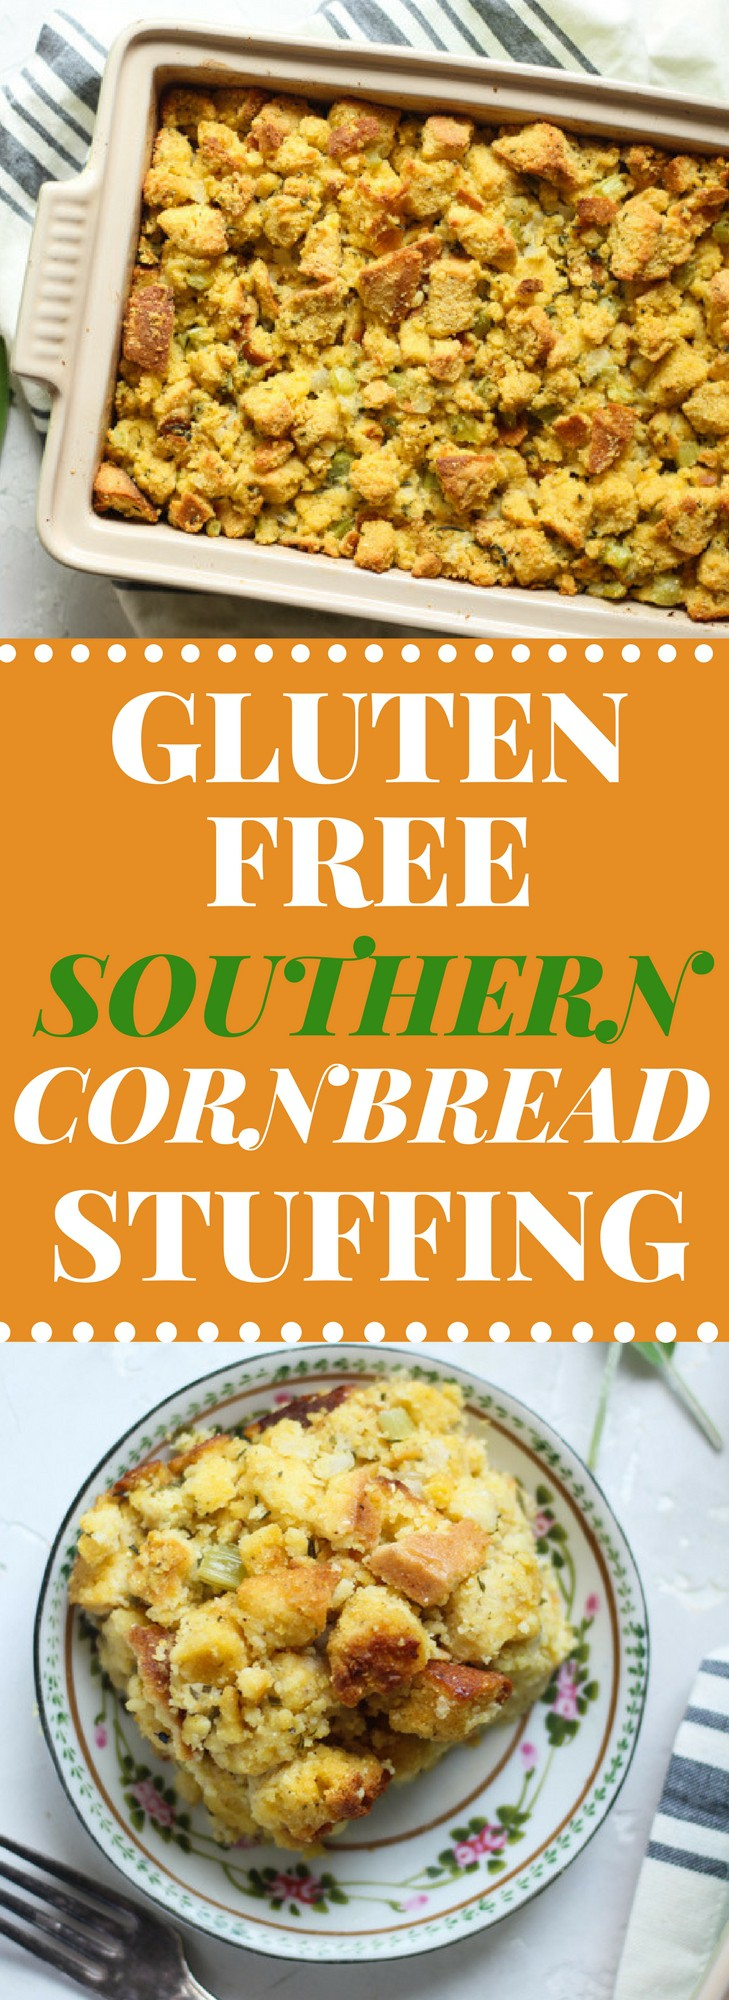 Gluten Free Sothern Cornbread stuffing with fresh rosemary, sage, and parsley